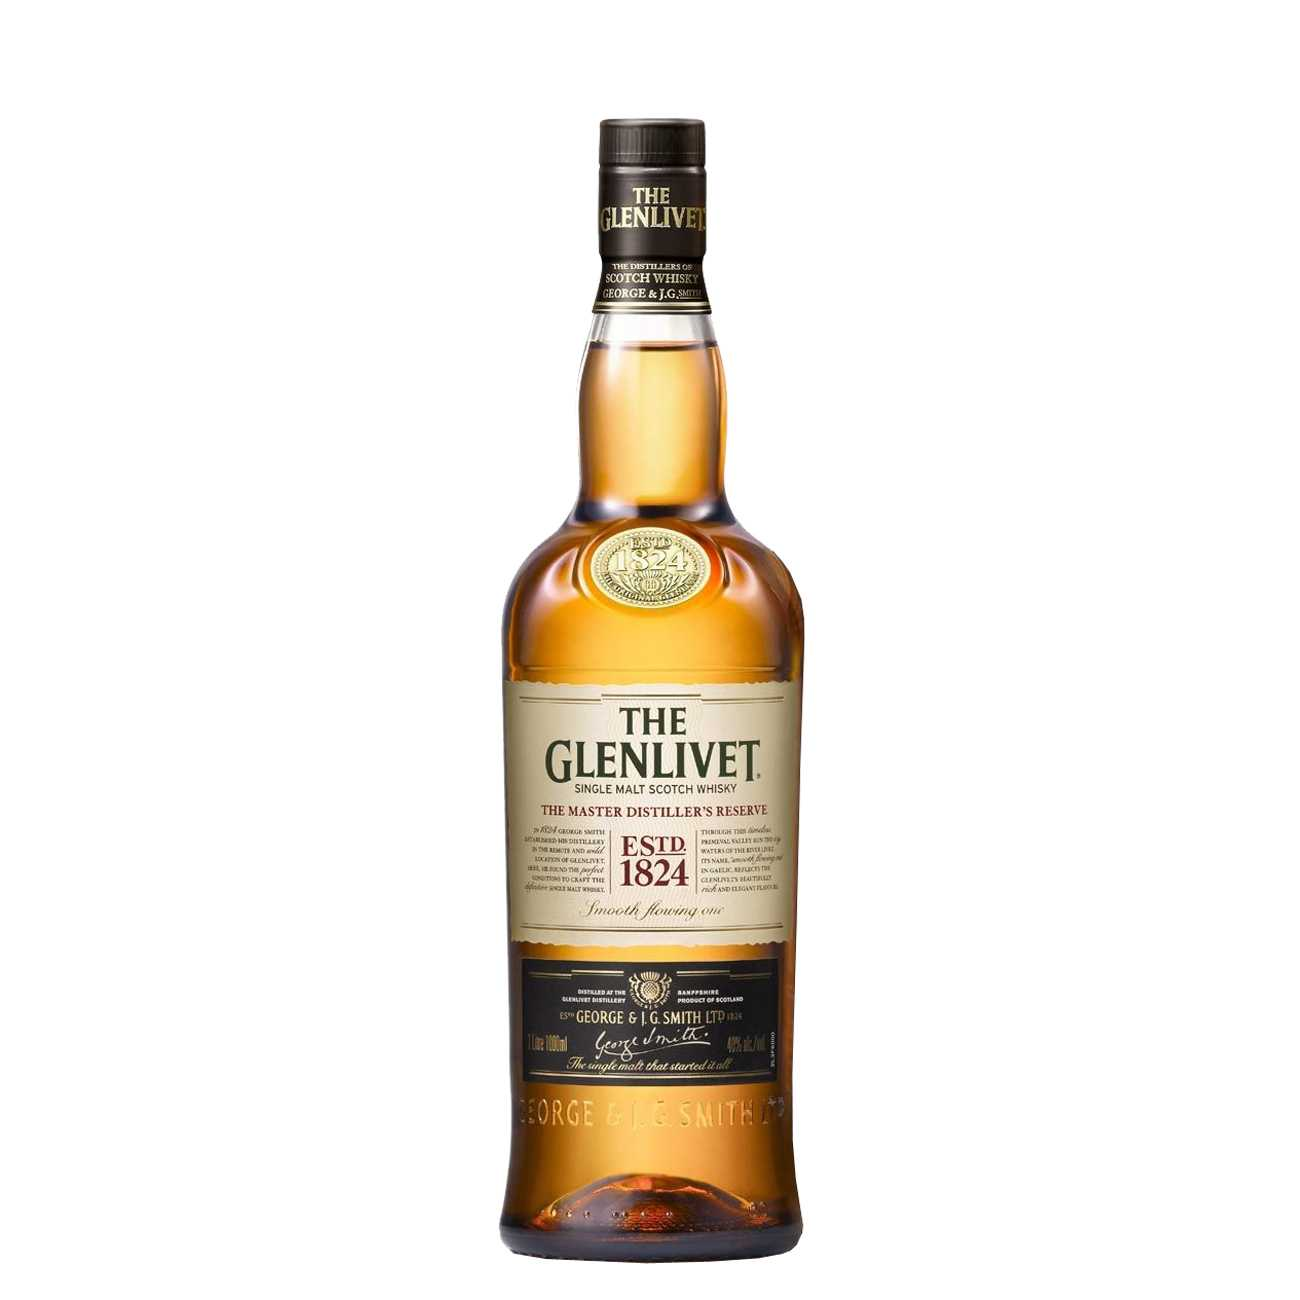 Whisky scotian, MASTER DISTILLER'S RESERVE 1000 ML, The Glenlivet